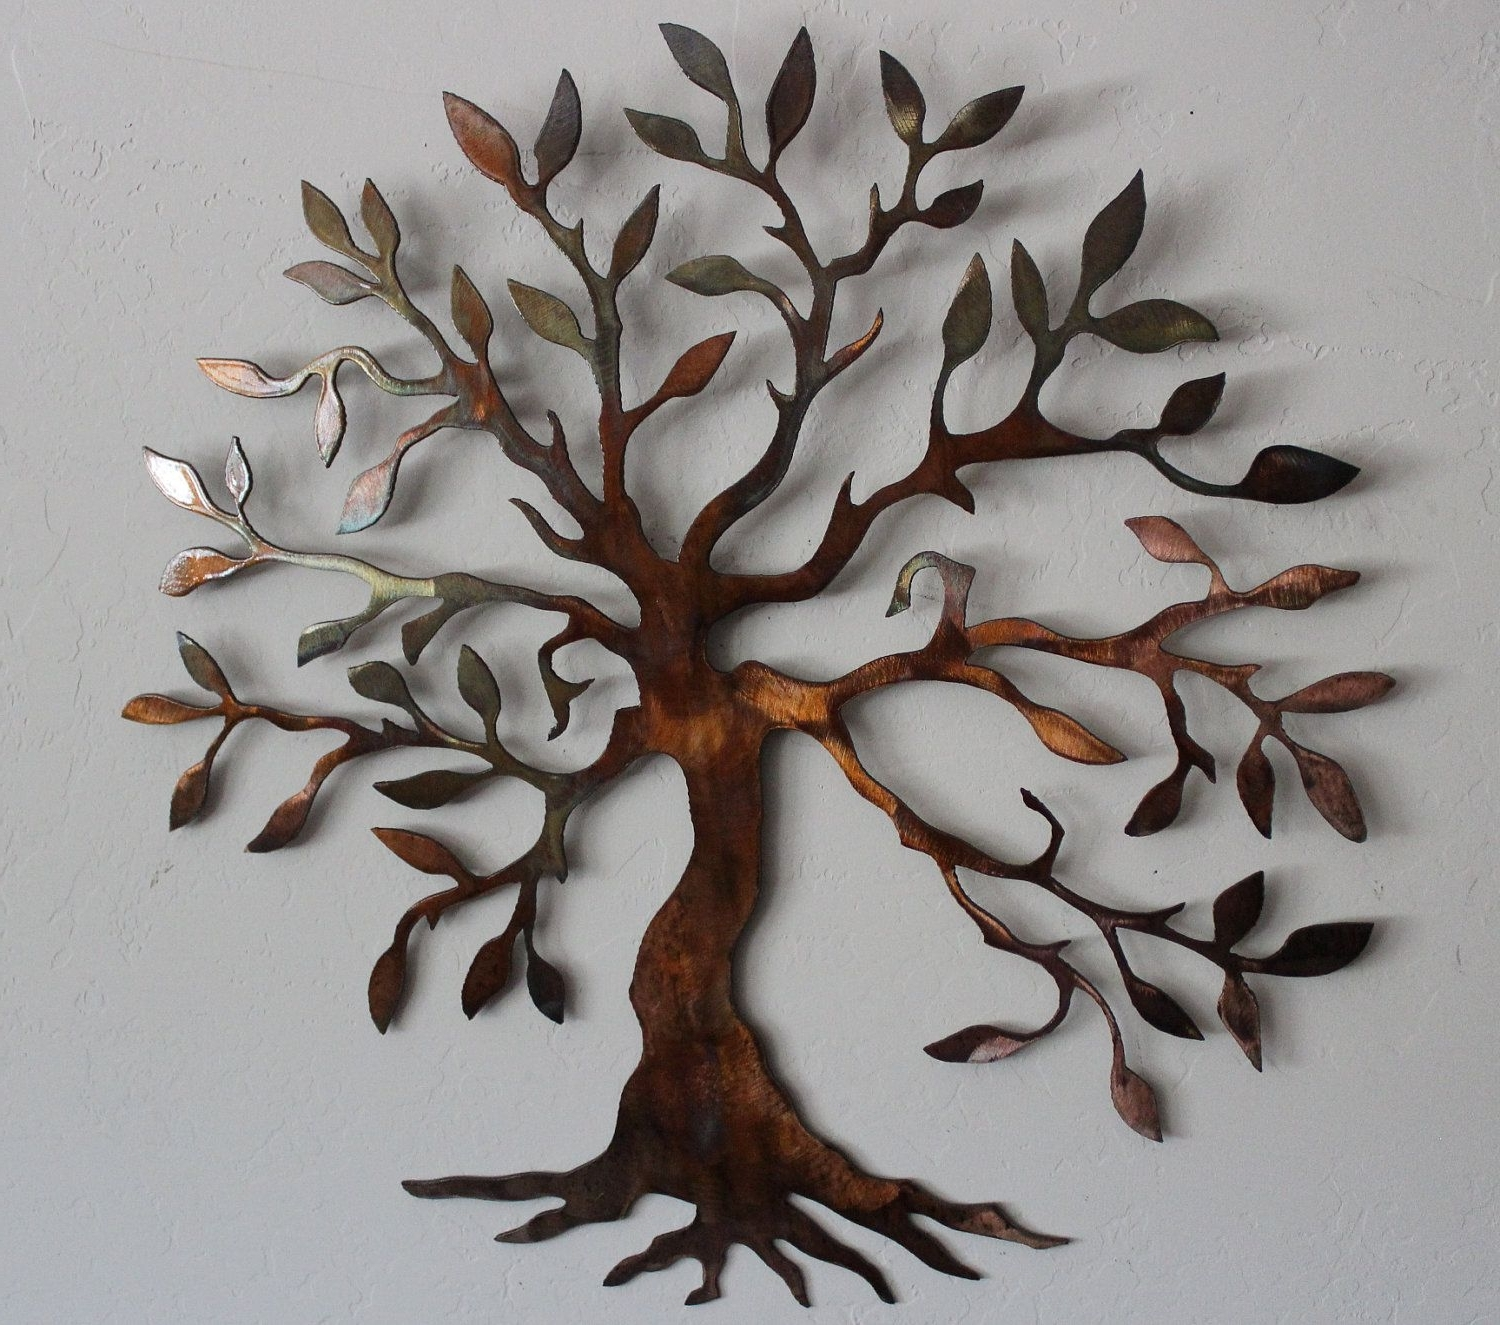 "Well Known Metal Art For Walls Inside Olive Tree –tree Of Live Metal Wall Art Decor 24"" Size. $ (View 5 of 15)"